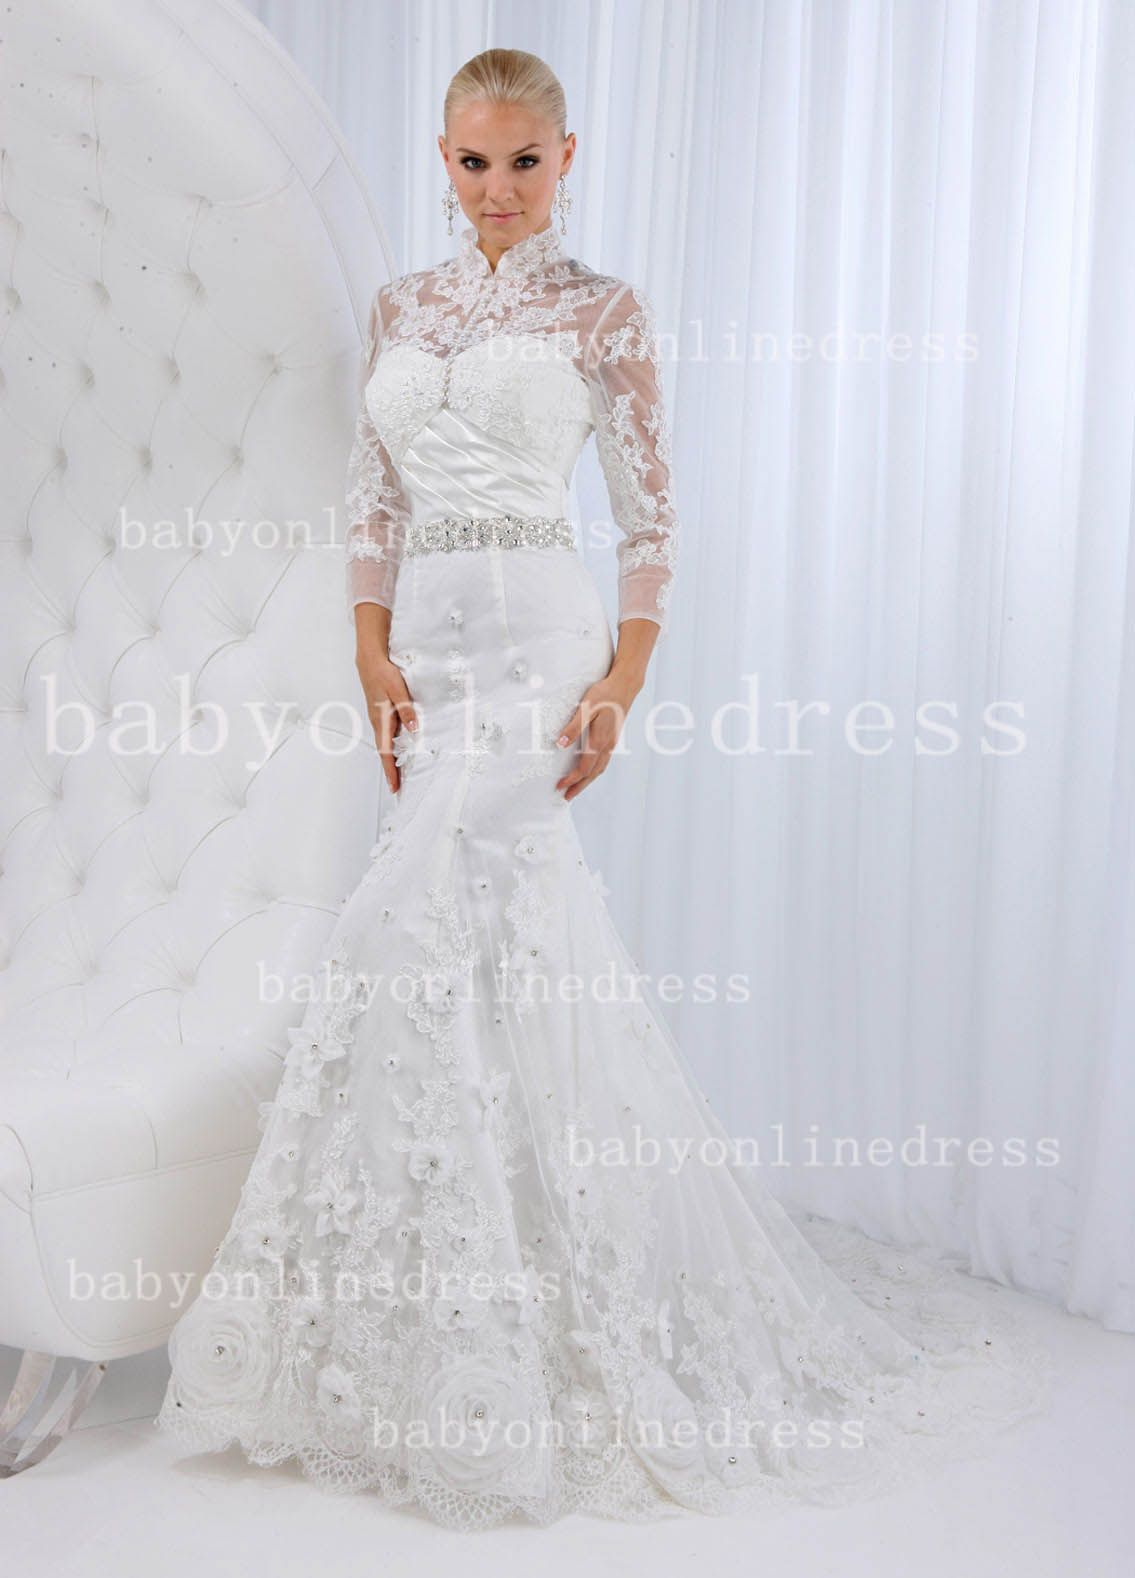 Buy wedding dresses online great selection and excellent prices